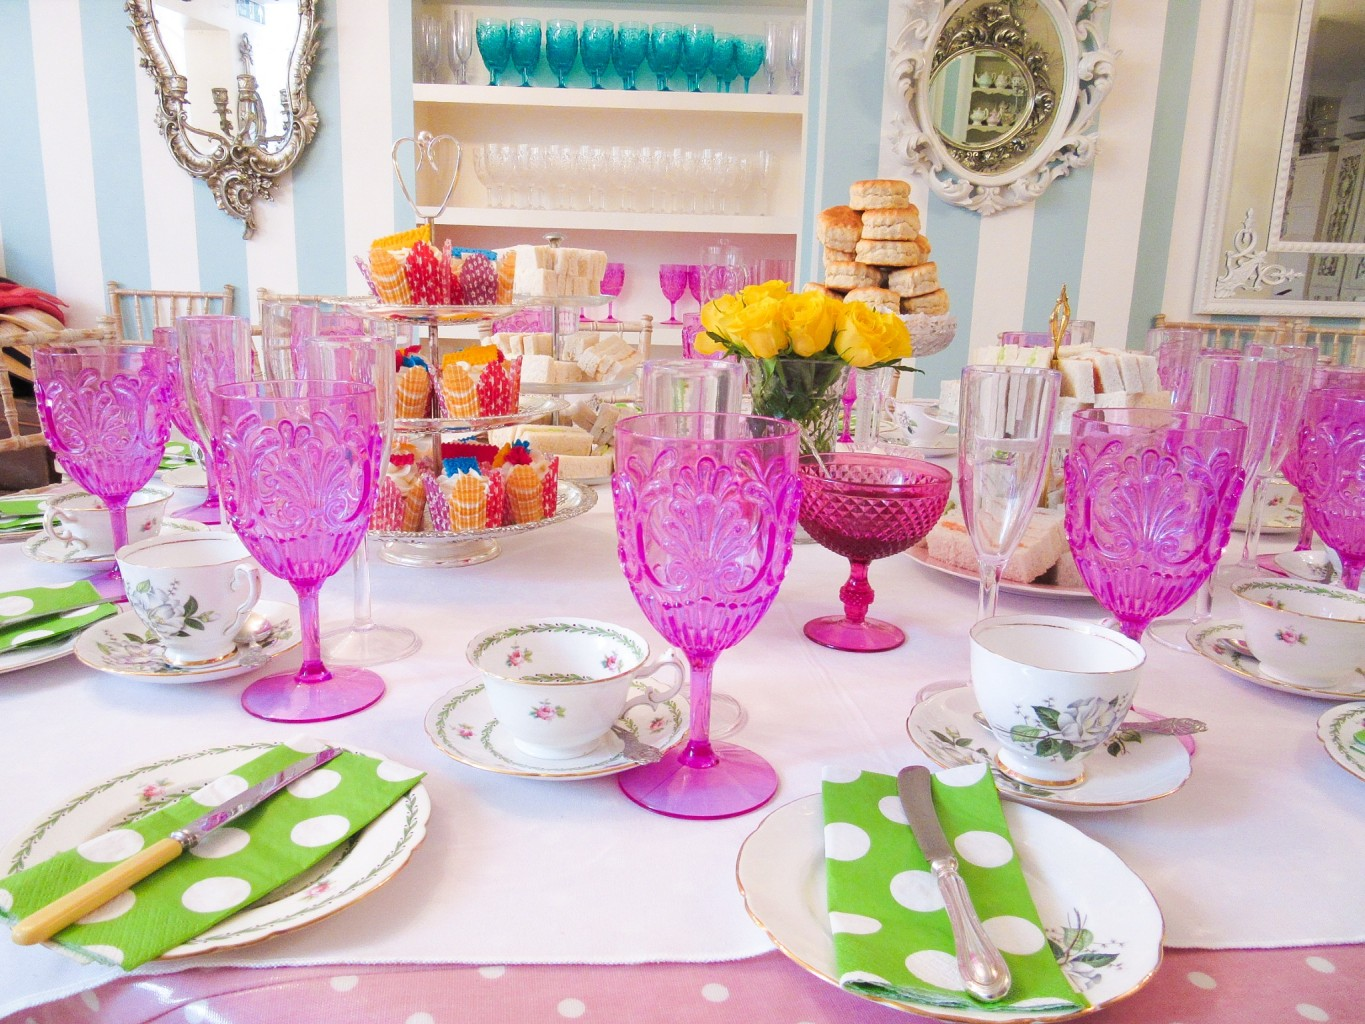 Afternoon tea party looking pretty